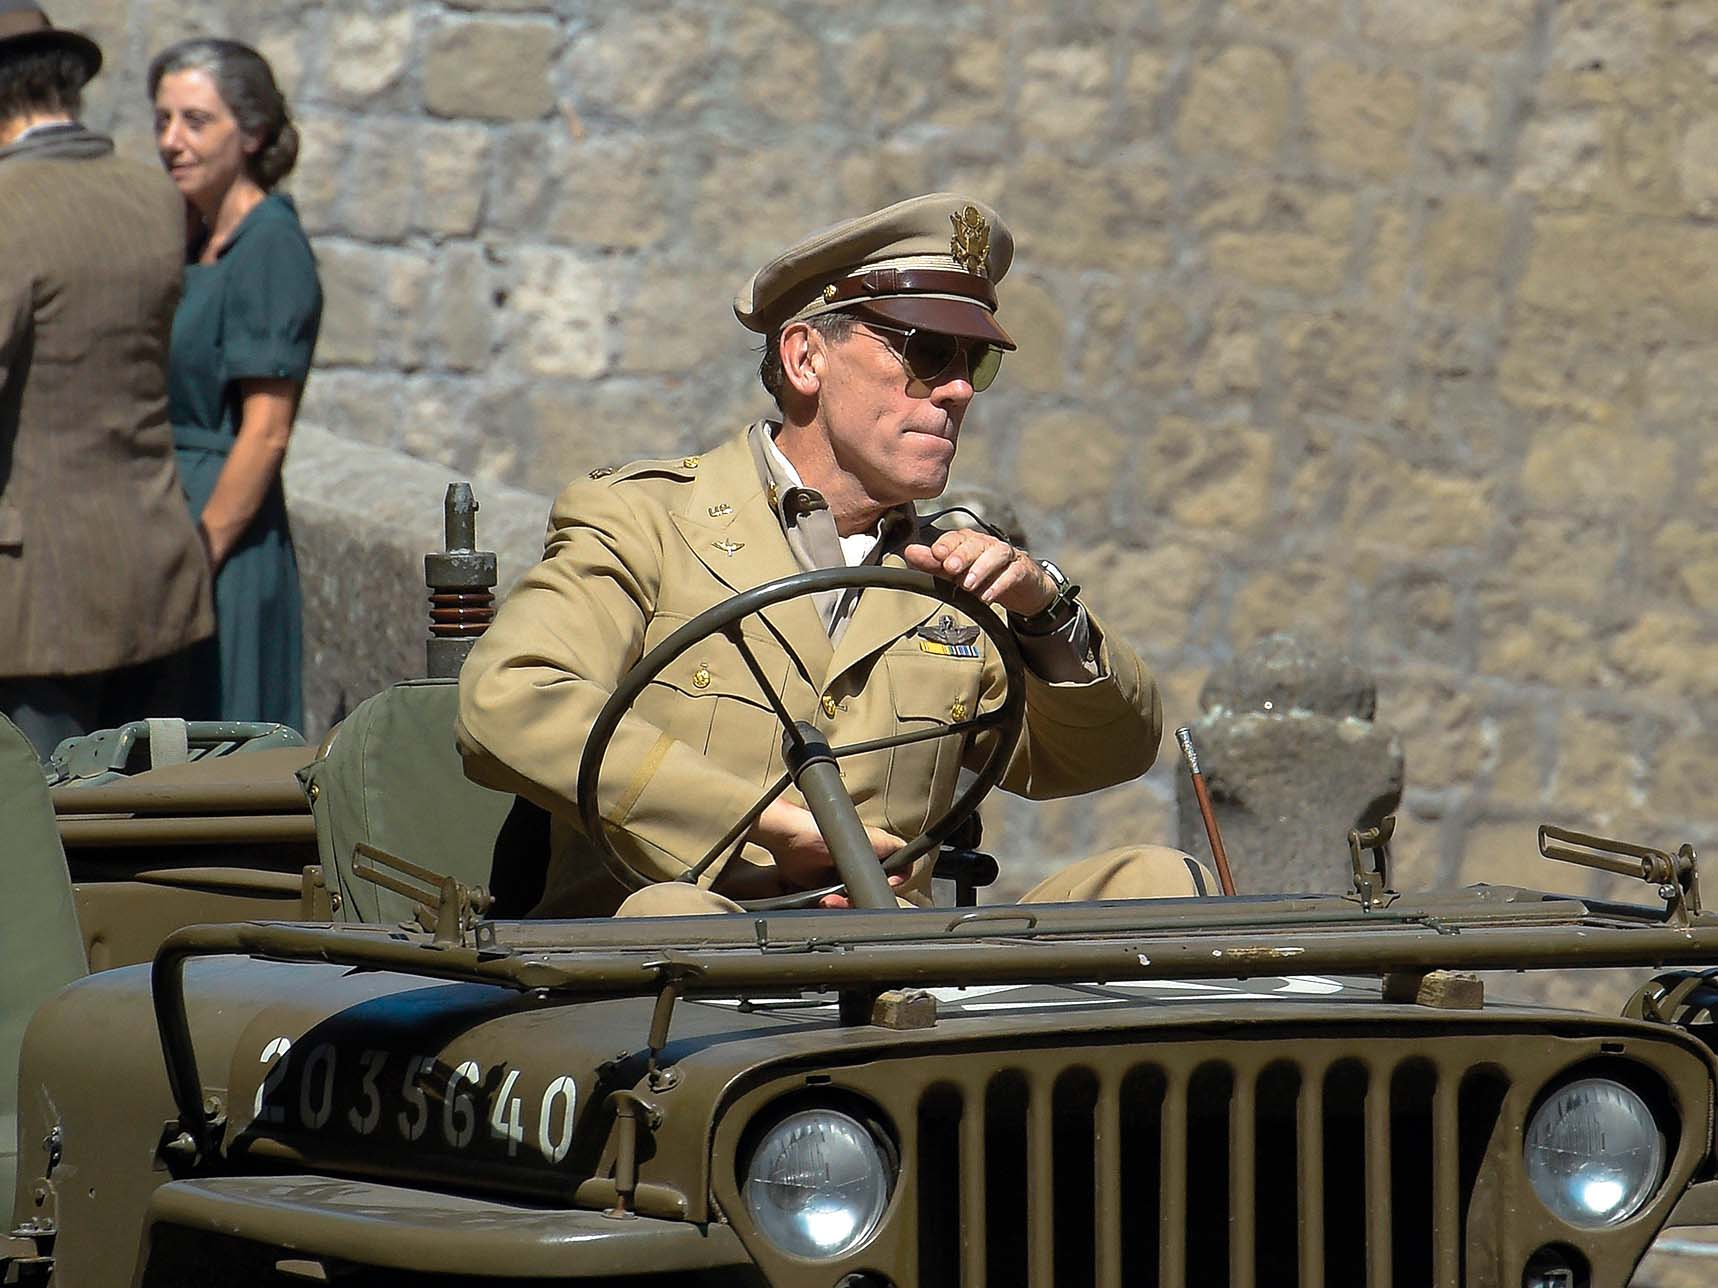 Actor Hugh Laurie is spotted in Viterbo driving a military jeep on the set of the serie Catch-22. 02 Aug 2018, Image: 380793604, License: Rights-managed, Restrictions: World Rights, Model Release: no, Credit line: Profimedia, Mega Agency